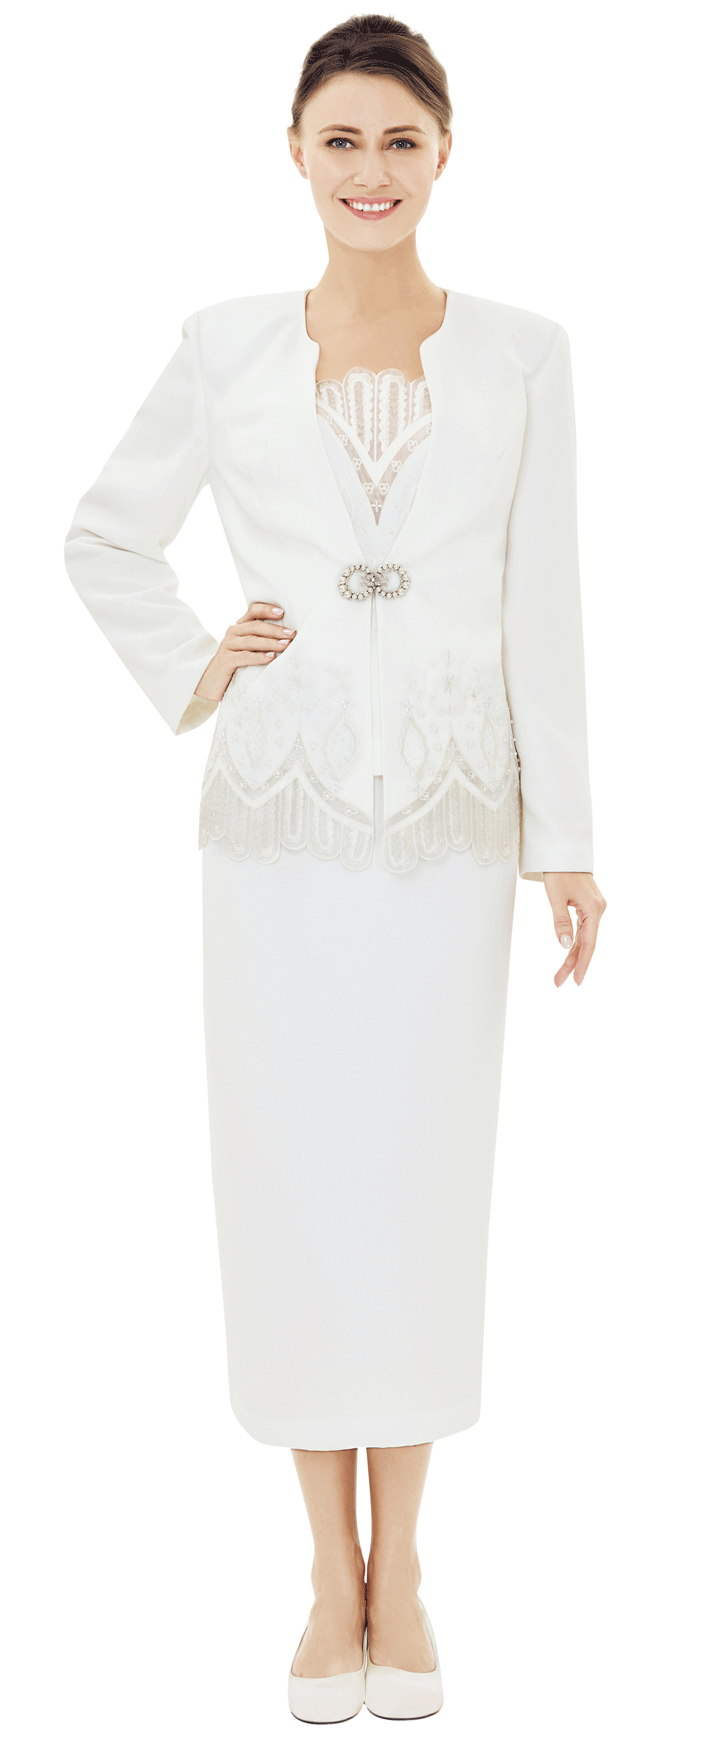 Nina Massini Suit 2523-White - Church Suits For Less